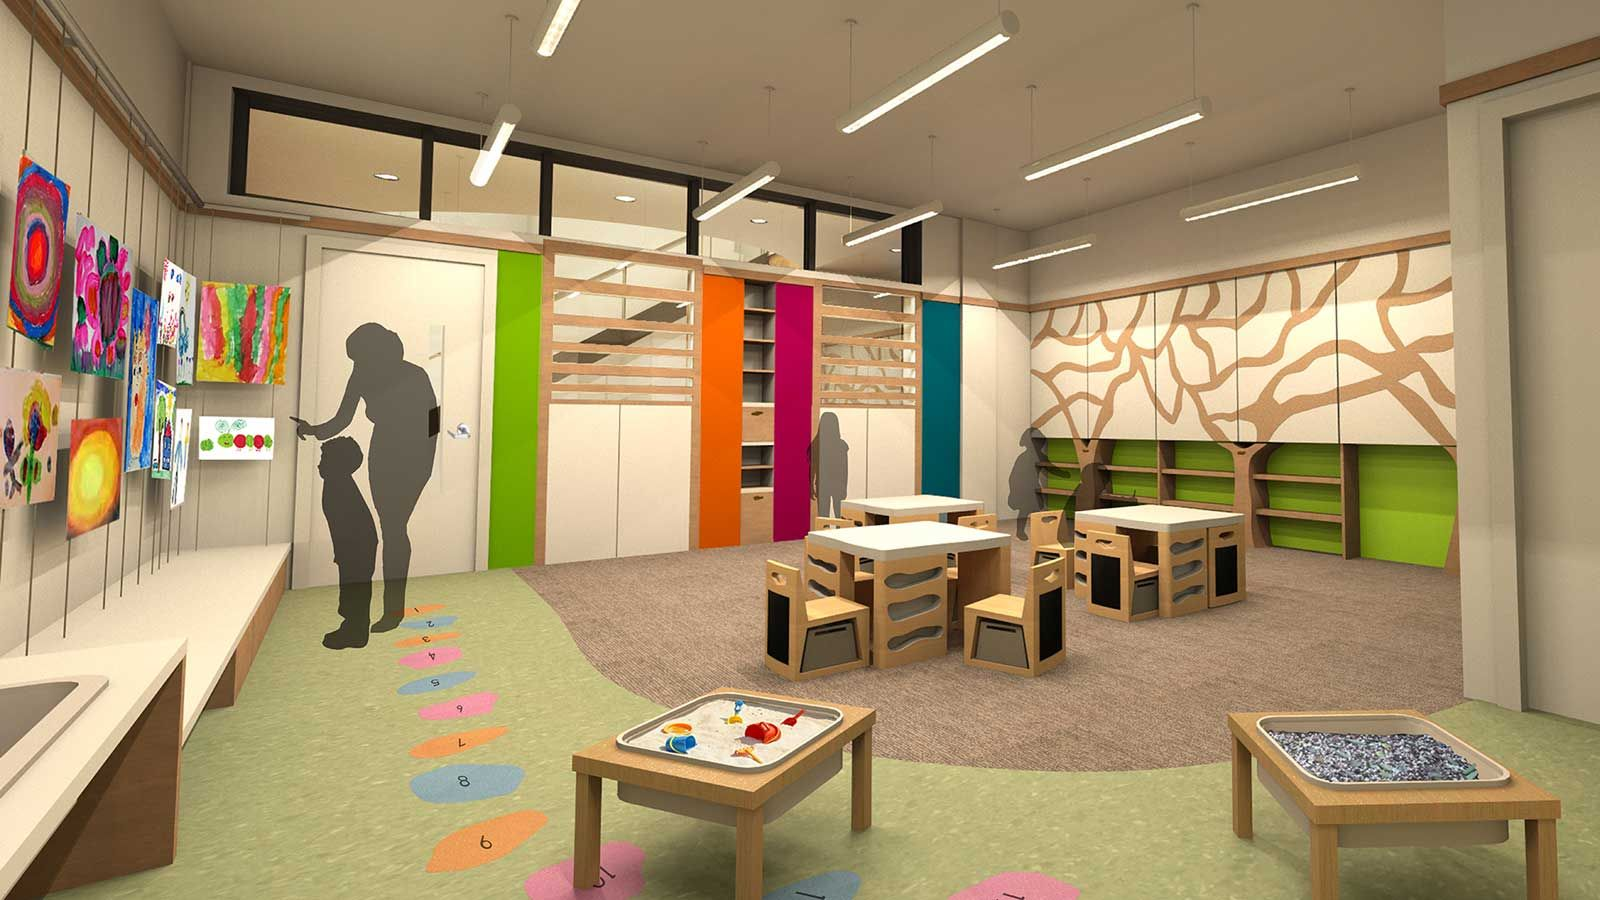 Classroom Design Ideas wild style classroom theme wild about learning theme pinterest classroom classroom themes and computer station Fabulous And Innovative Classroom Flooring Ideas With Minimalist Wooden Furniture Classroom Design Idea And Colorful Wall Decorating Kids Classroom Design